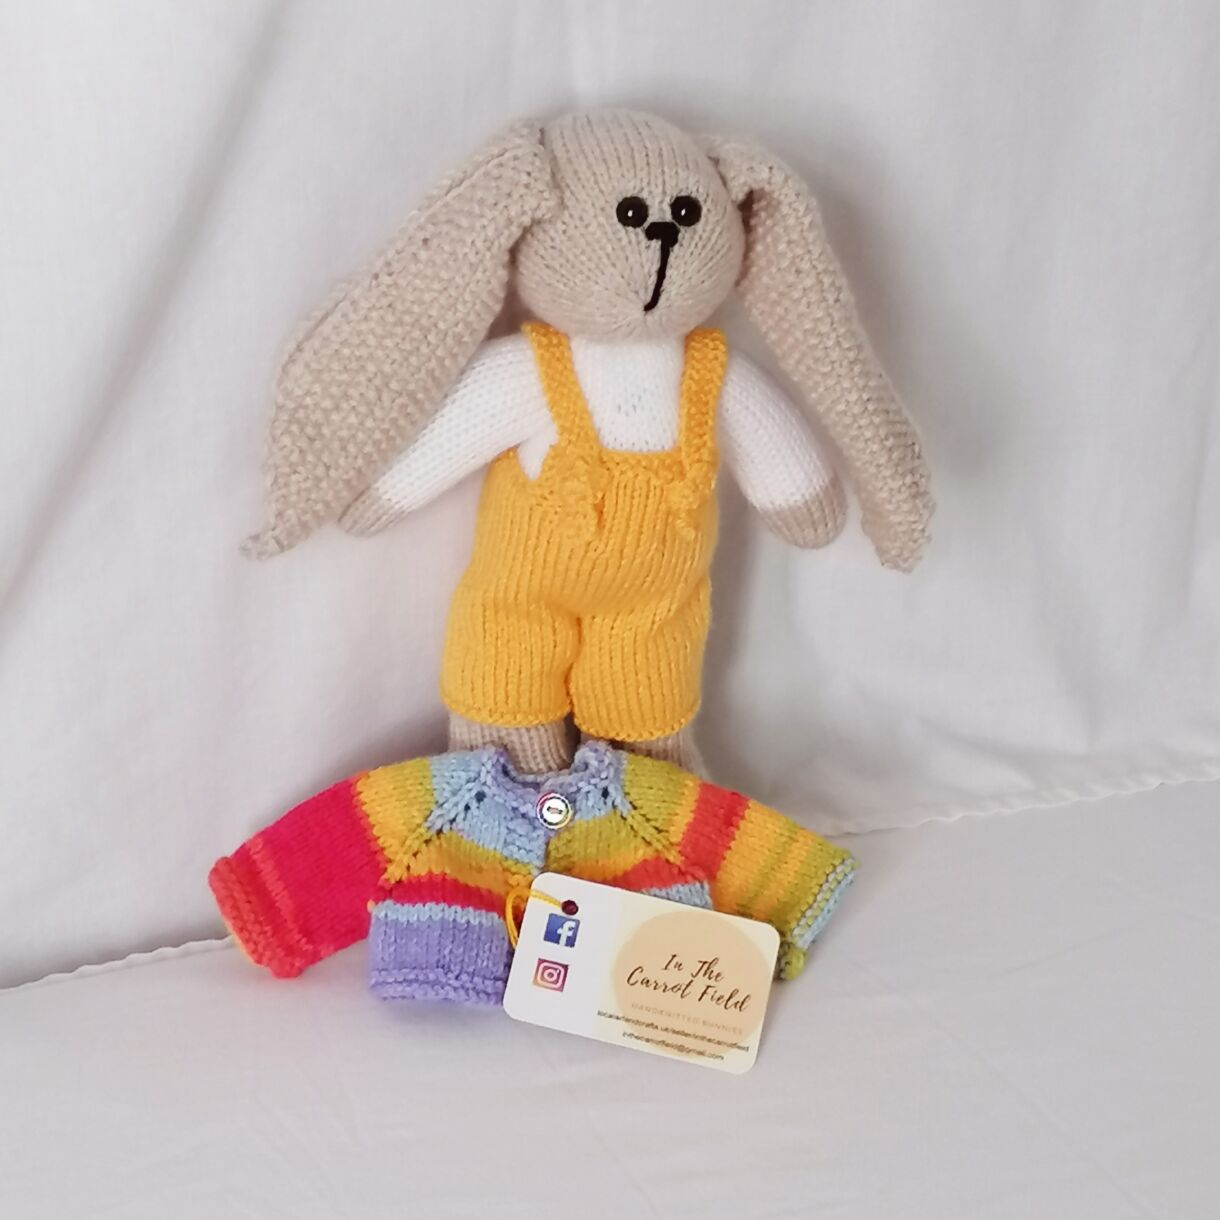 handknitted-rainbow-bunny-unique-gift-yellow-front-no-jacket